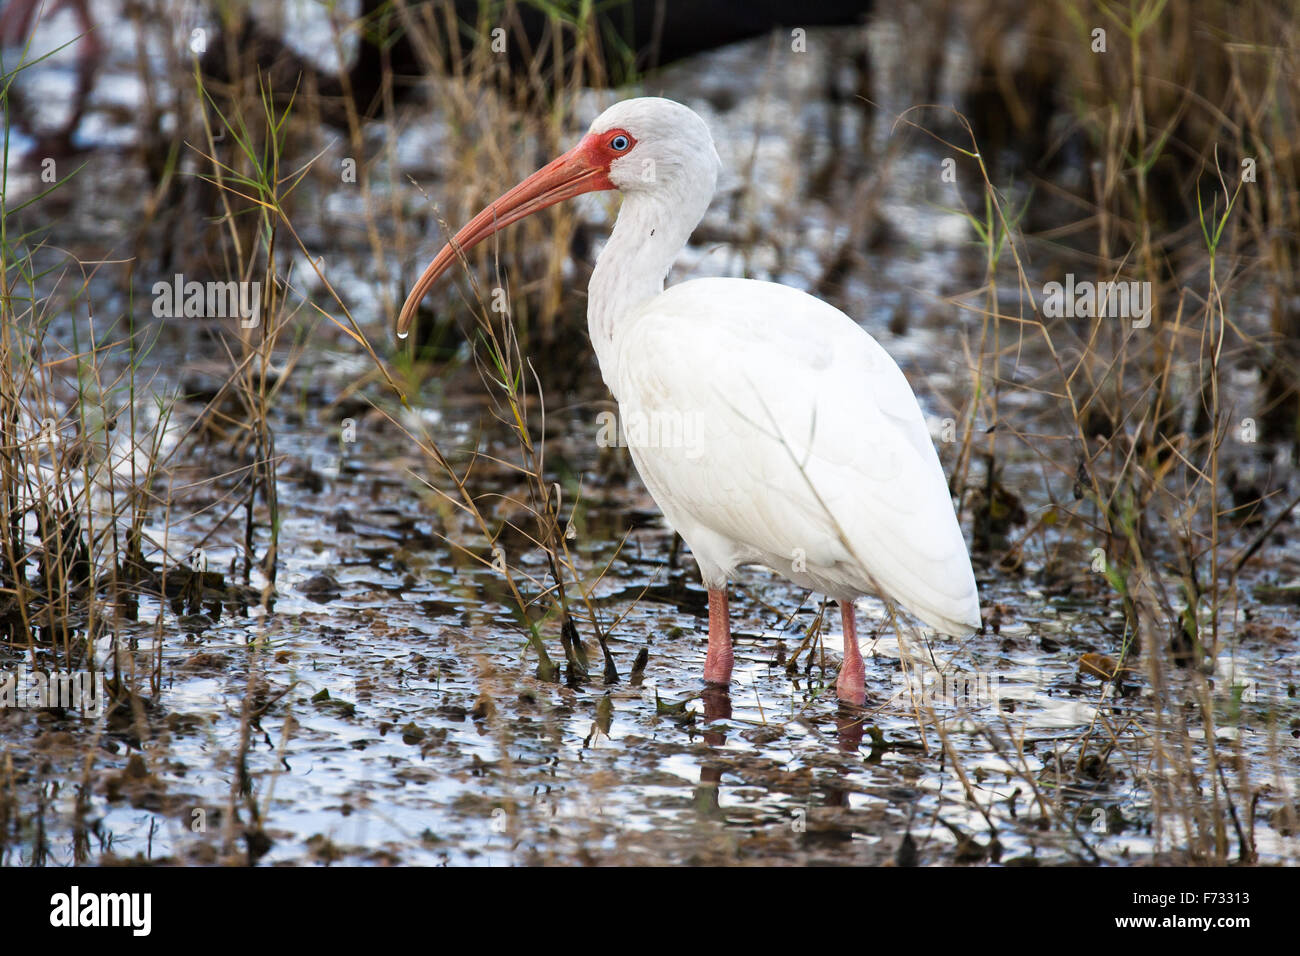 An American white ibis wading through the wetland. - Stock Image